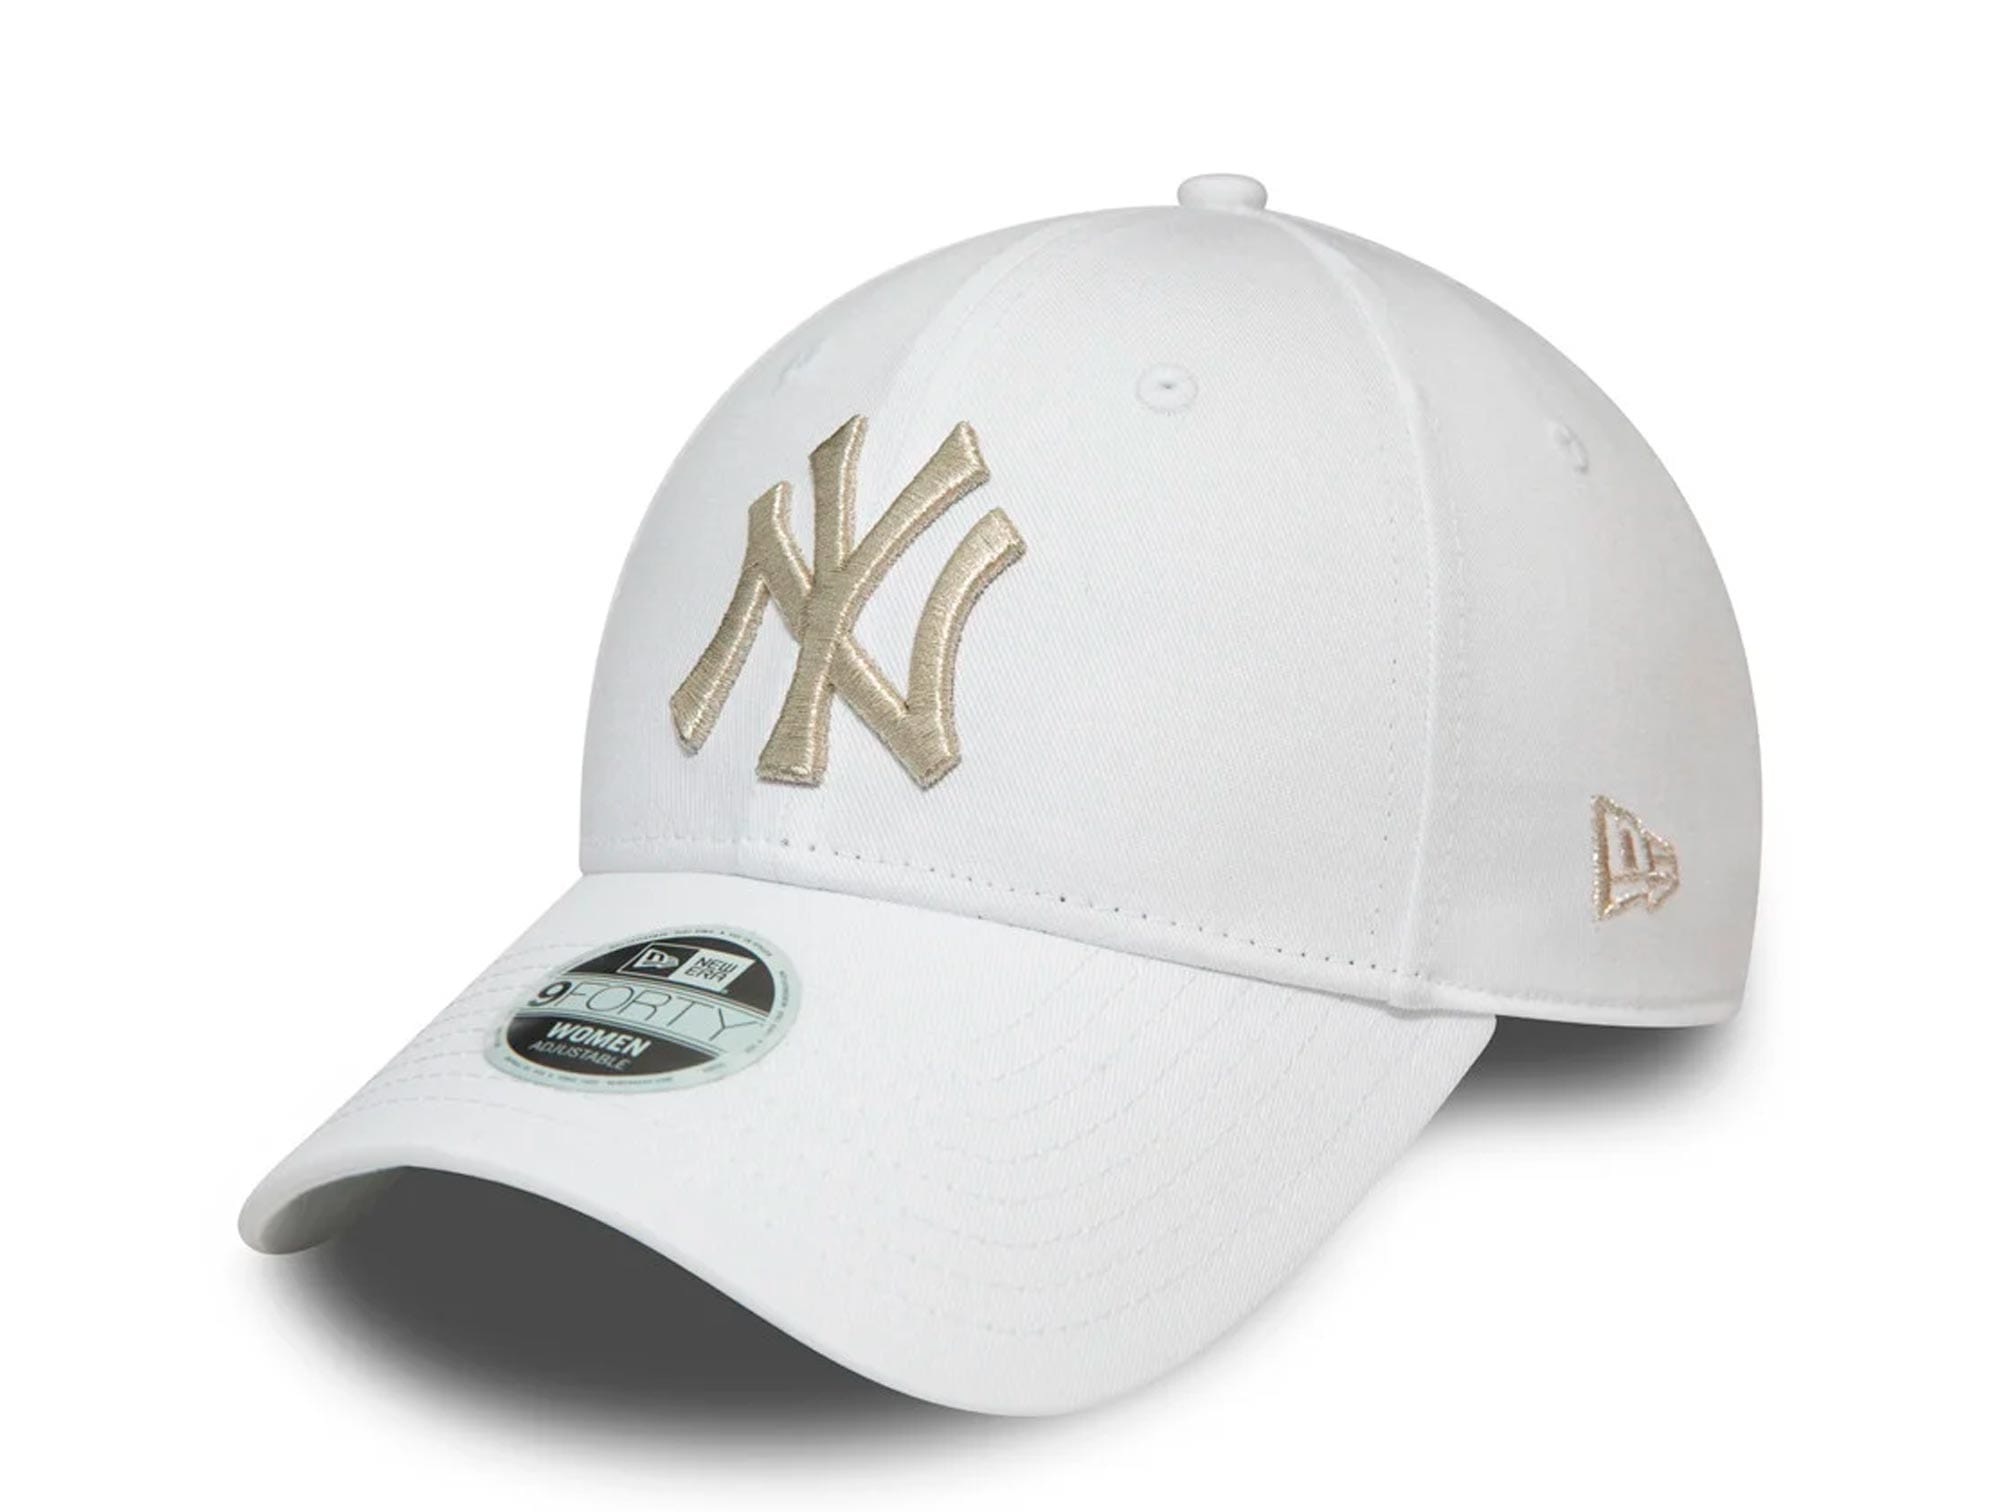 Jockey New Era Mlb 940 New York Yankees Mujer Blanco